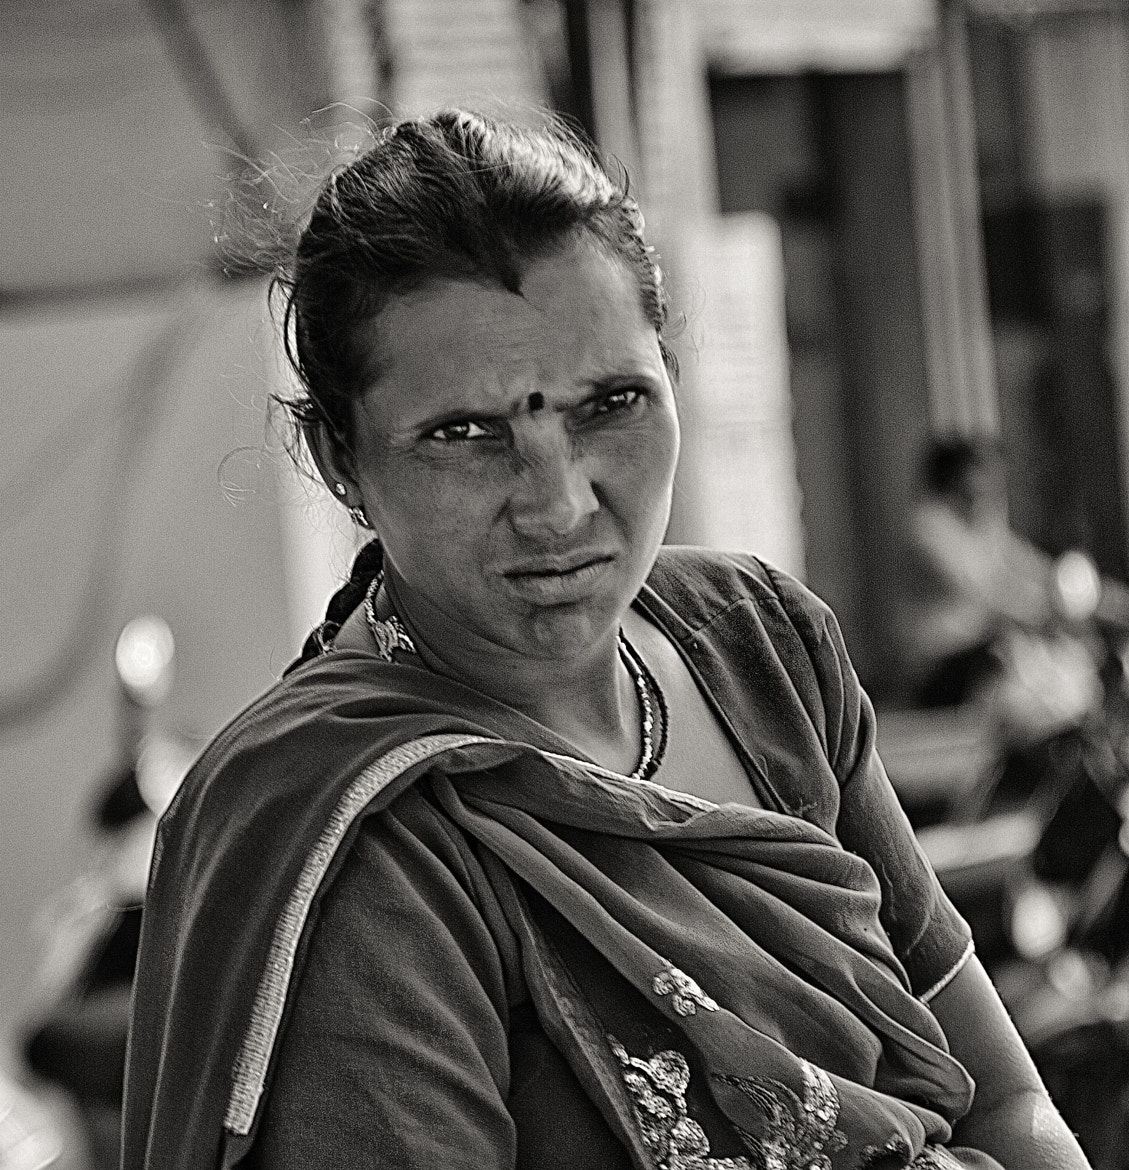 Photograph Lady at the Market (b&w) by John Hoey on 500px